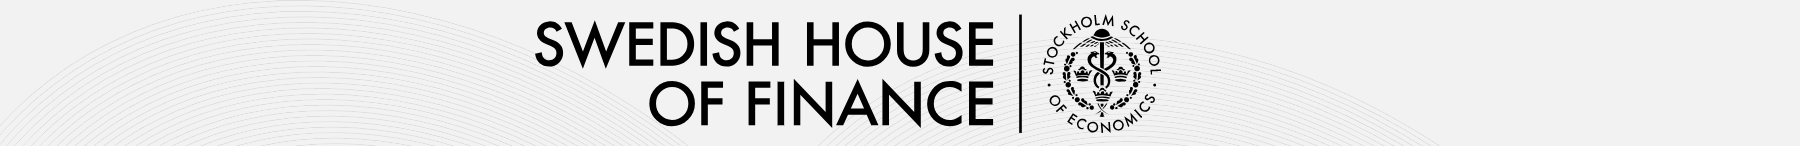 LOGO_house of finance_job search.png